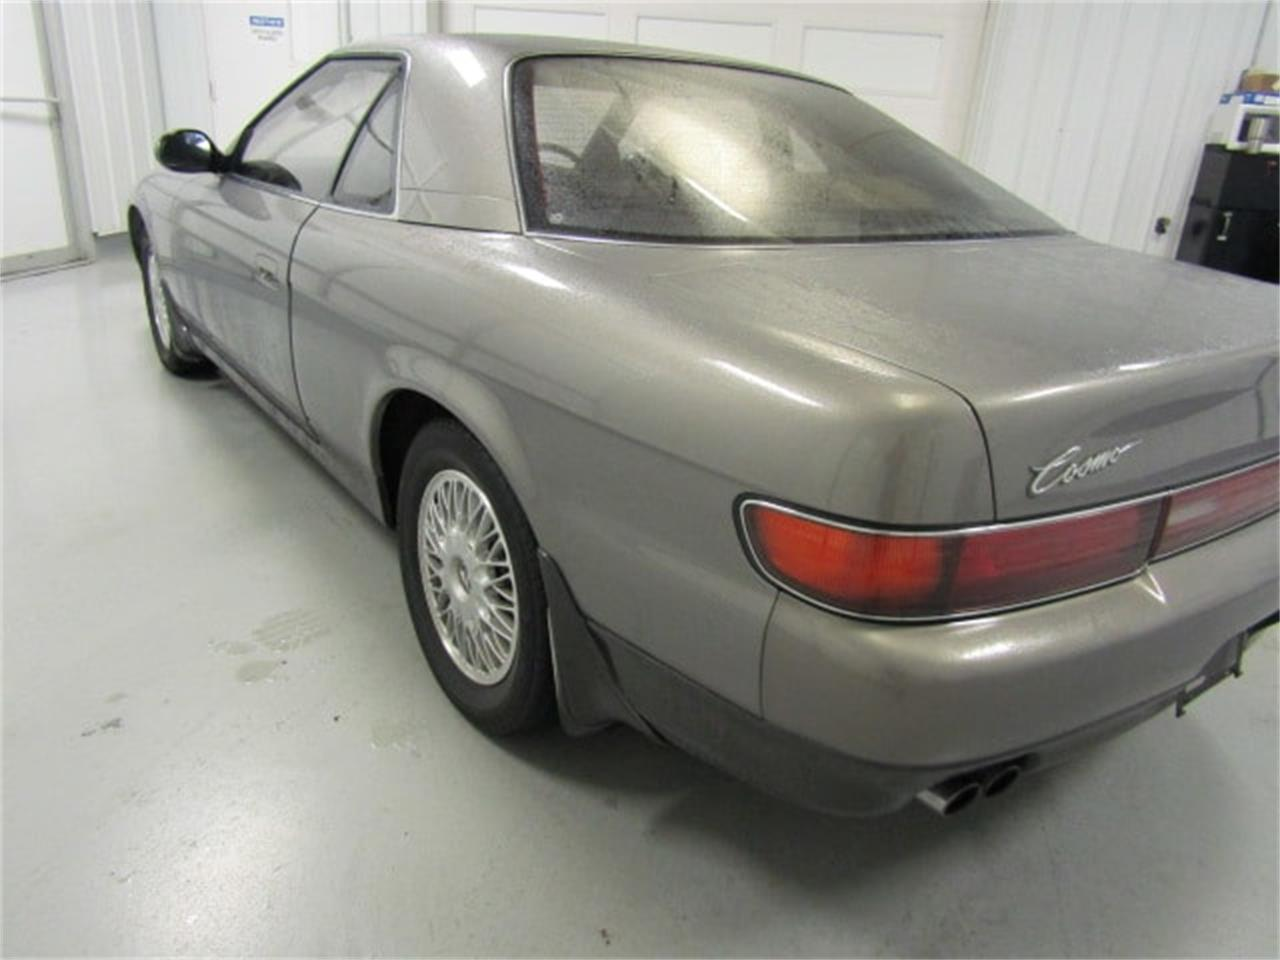 Large Picture of 1992 Eunos Cosmo - $16,900.00 Offered by Duncan Imports & Classic Cars - LVD1